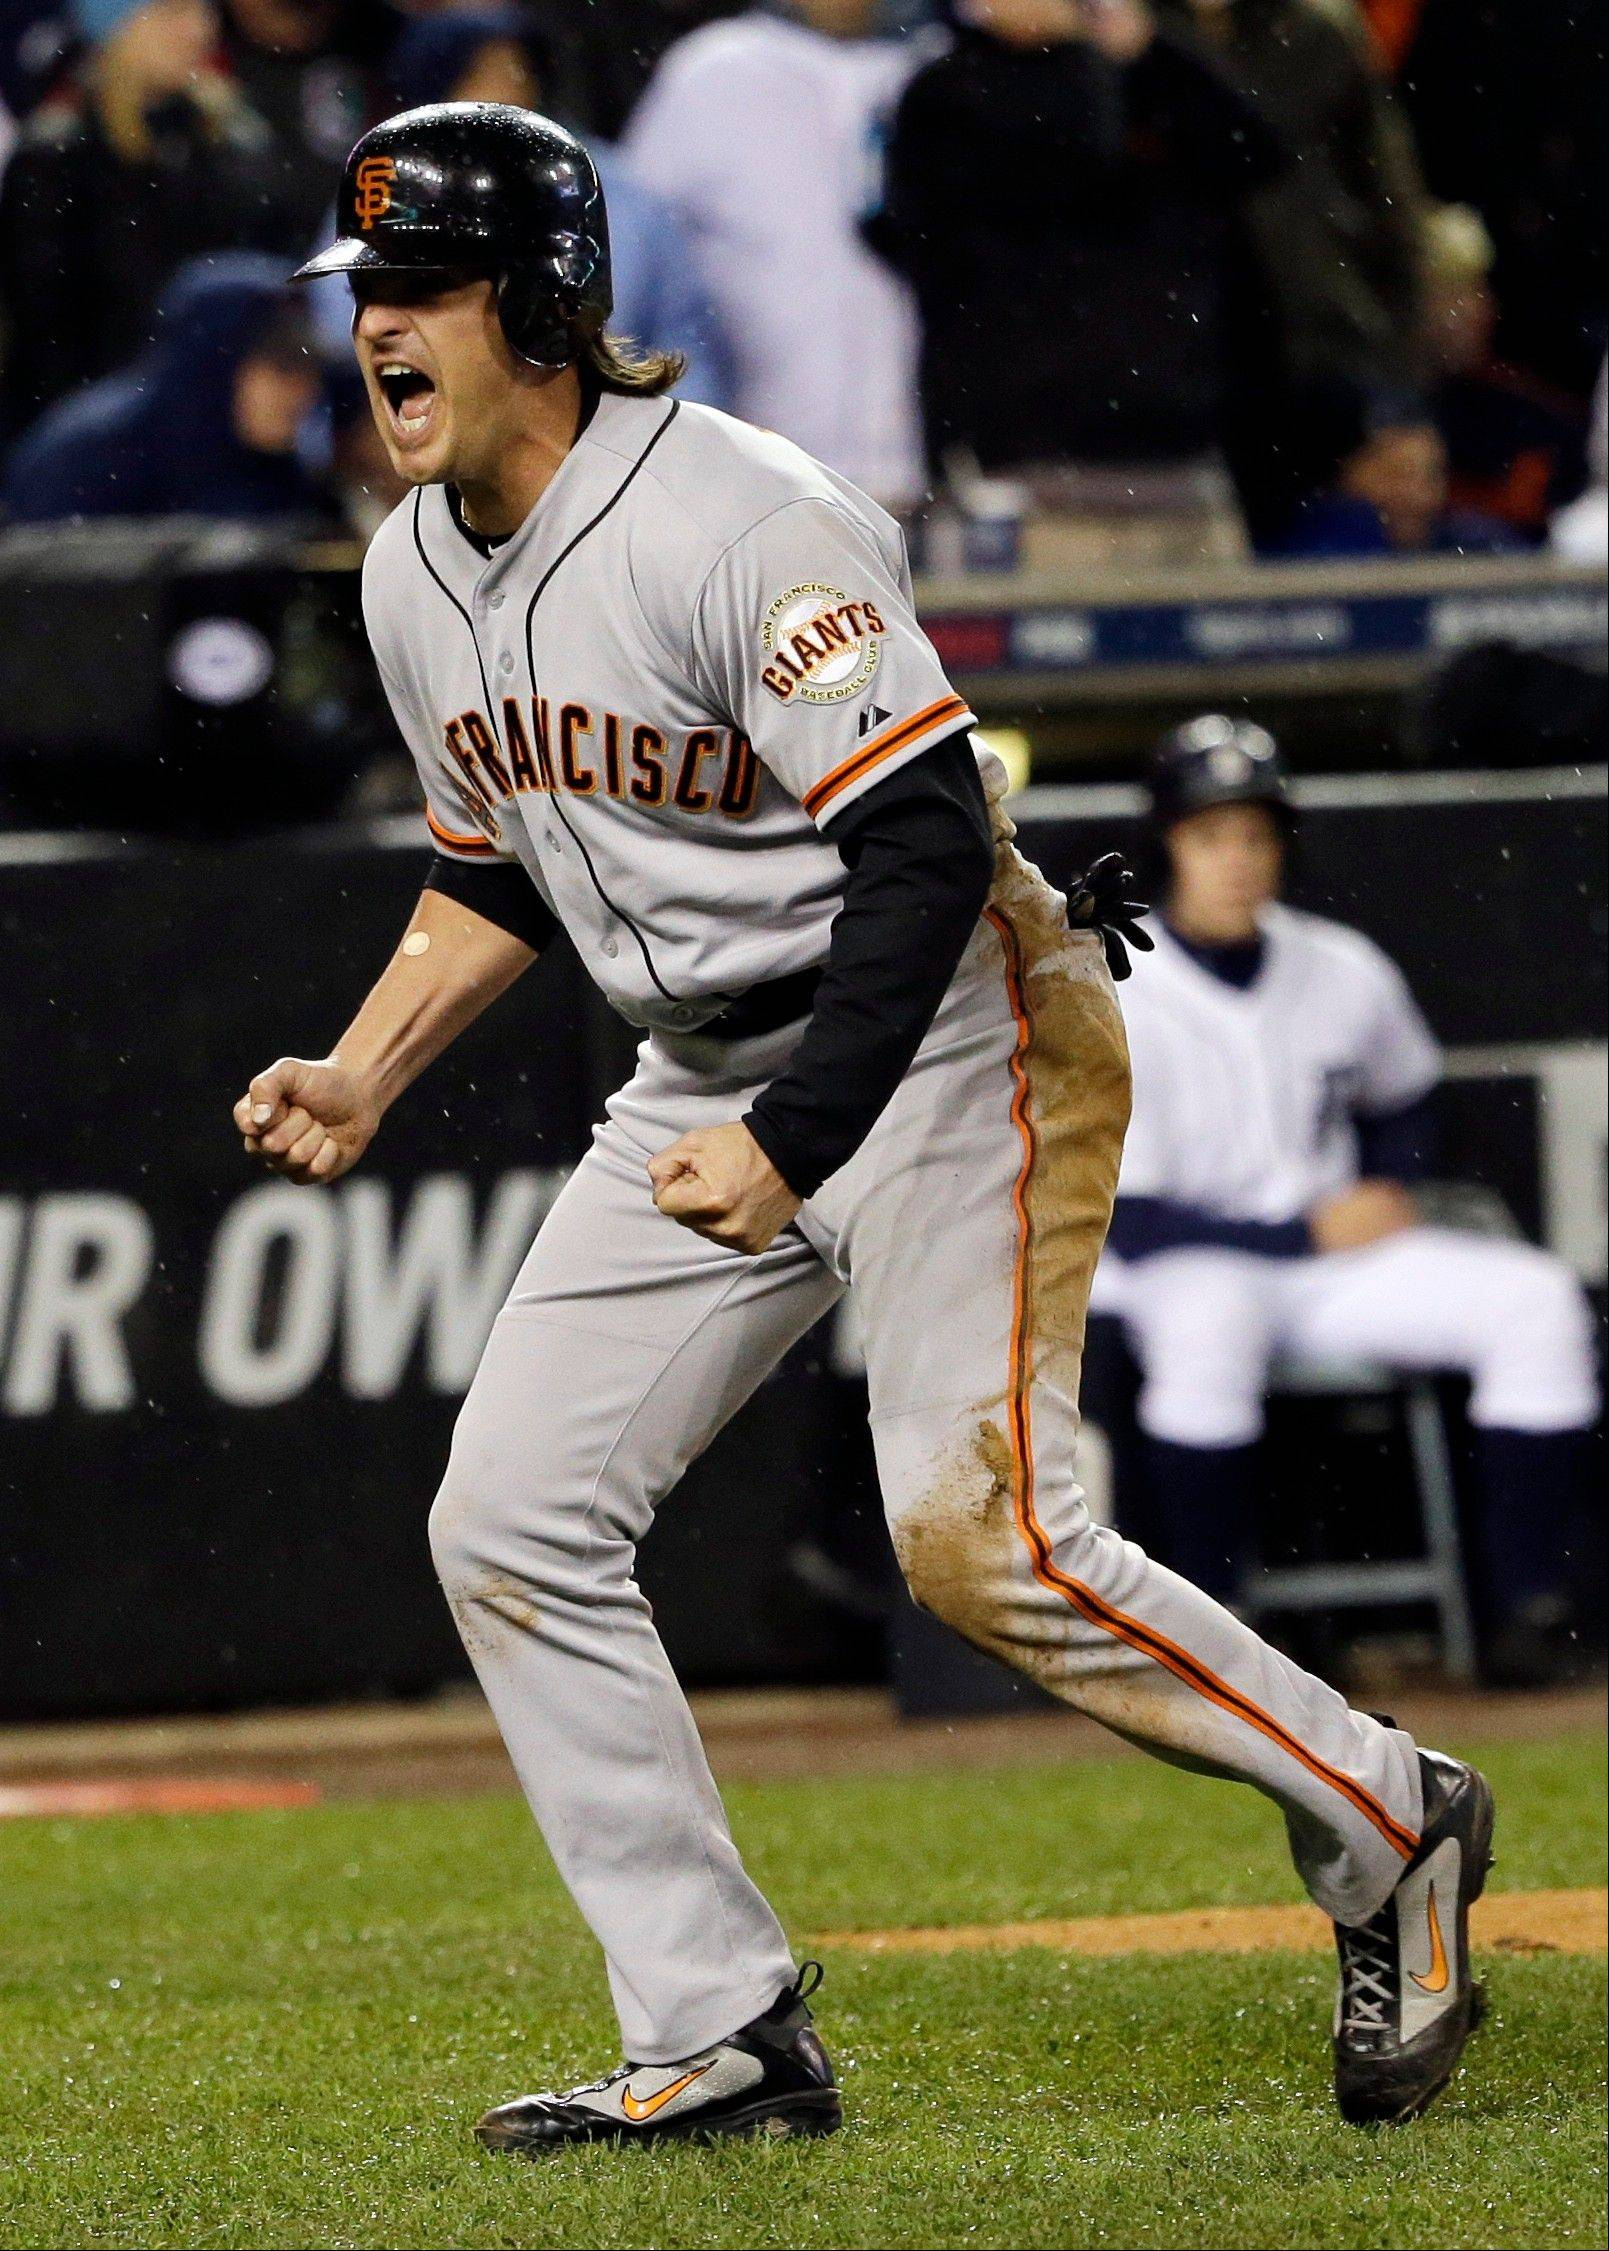 San Francisco Giants infielder Ryan Theriot reacts after scoring from second on a hit by Marco Scutaro during the 10th inning of Game 4 of baseball's World Series against the Detroit Tigers Sunday, Oct. 28, 2012, in Detroit. Theriot, a former Cub, also won the World Series in 2011 as a member of the St. Louis Cardinals.